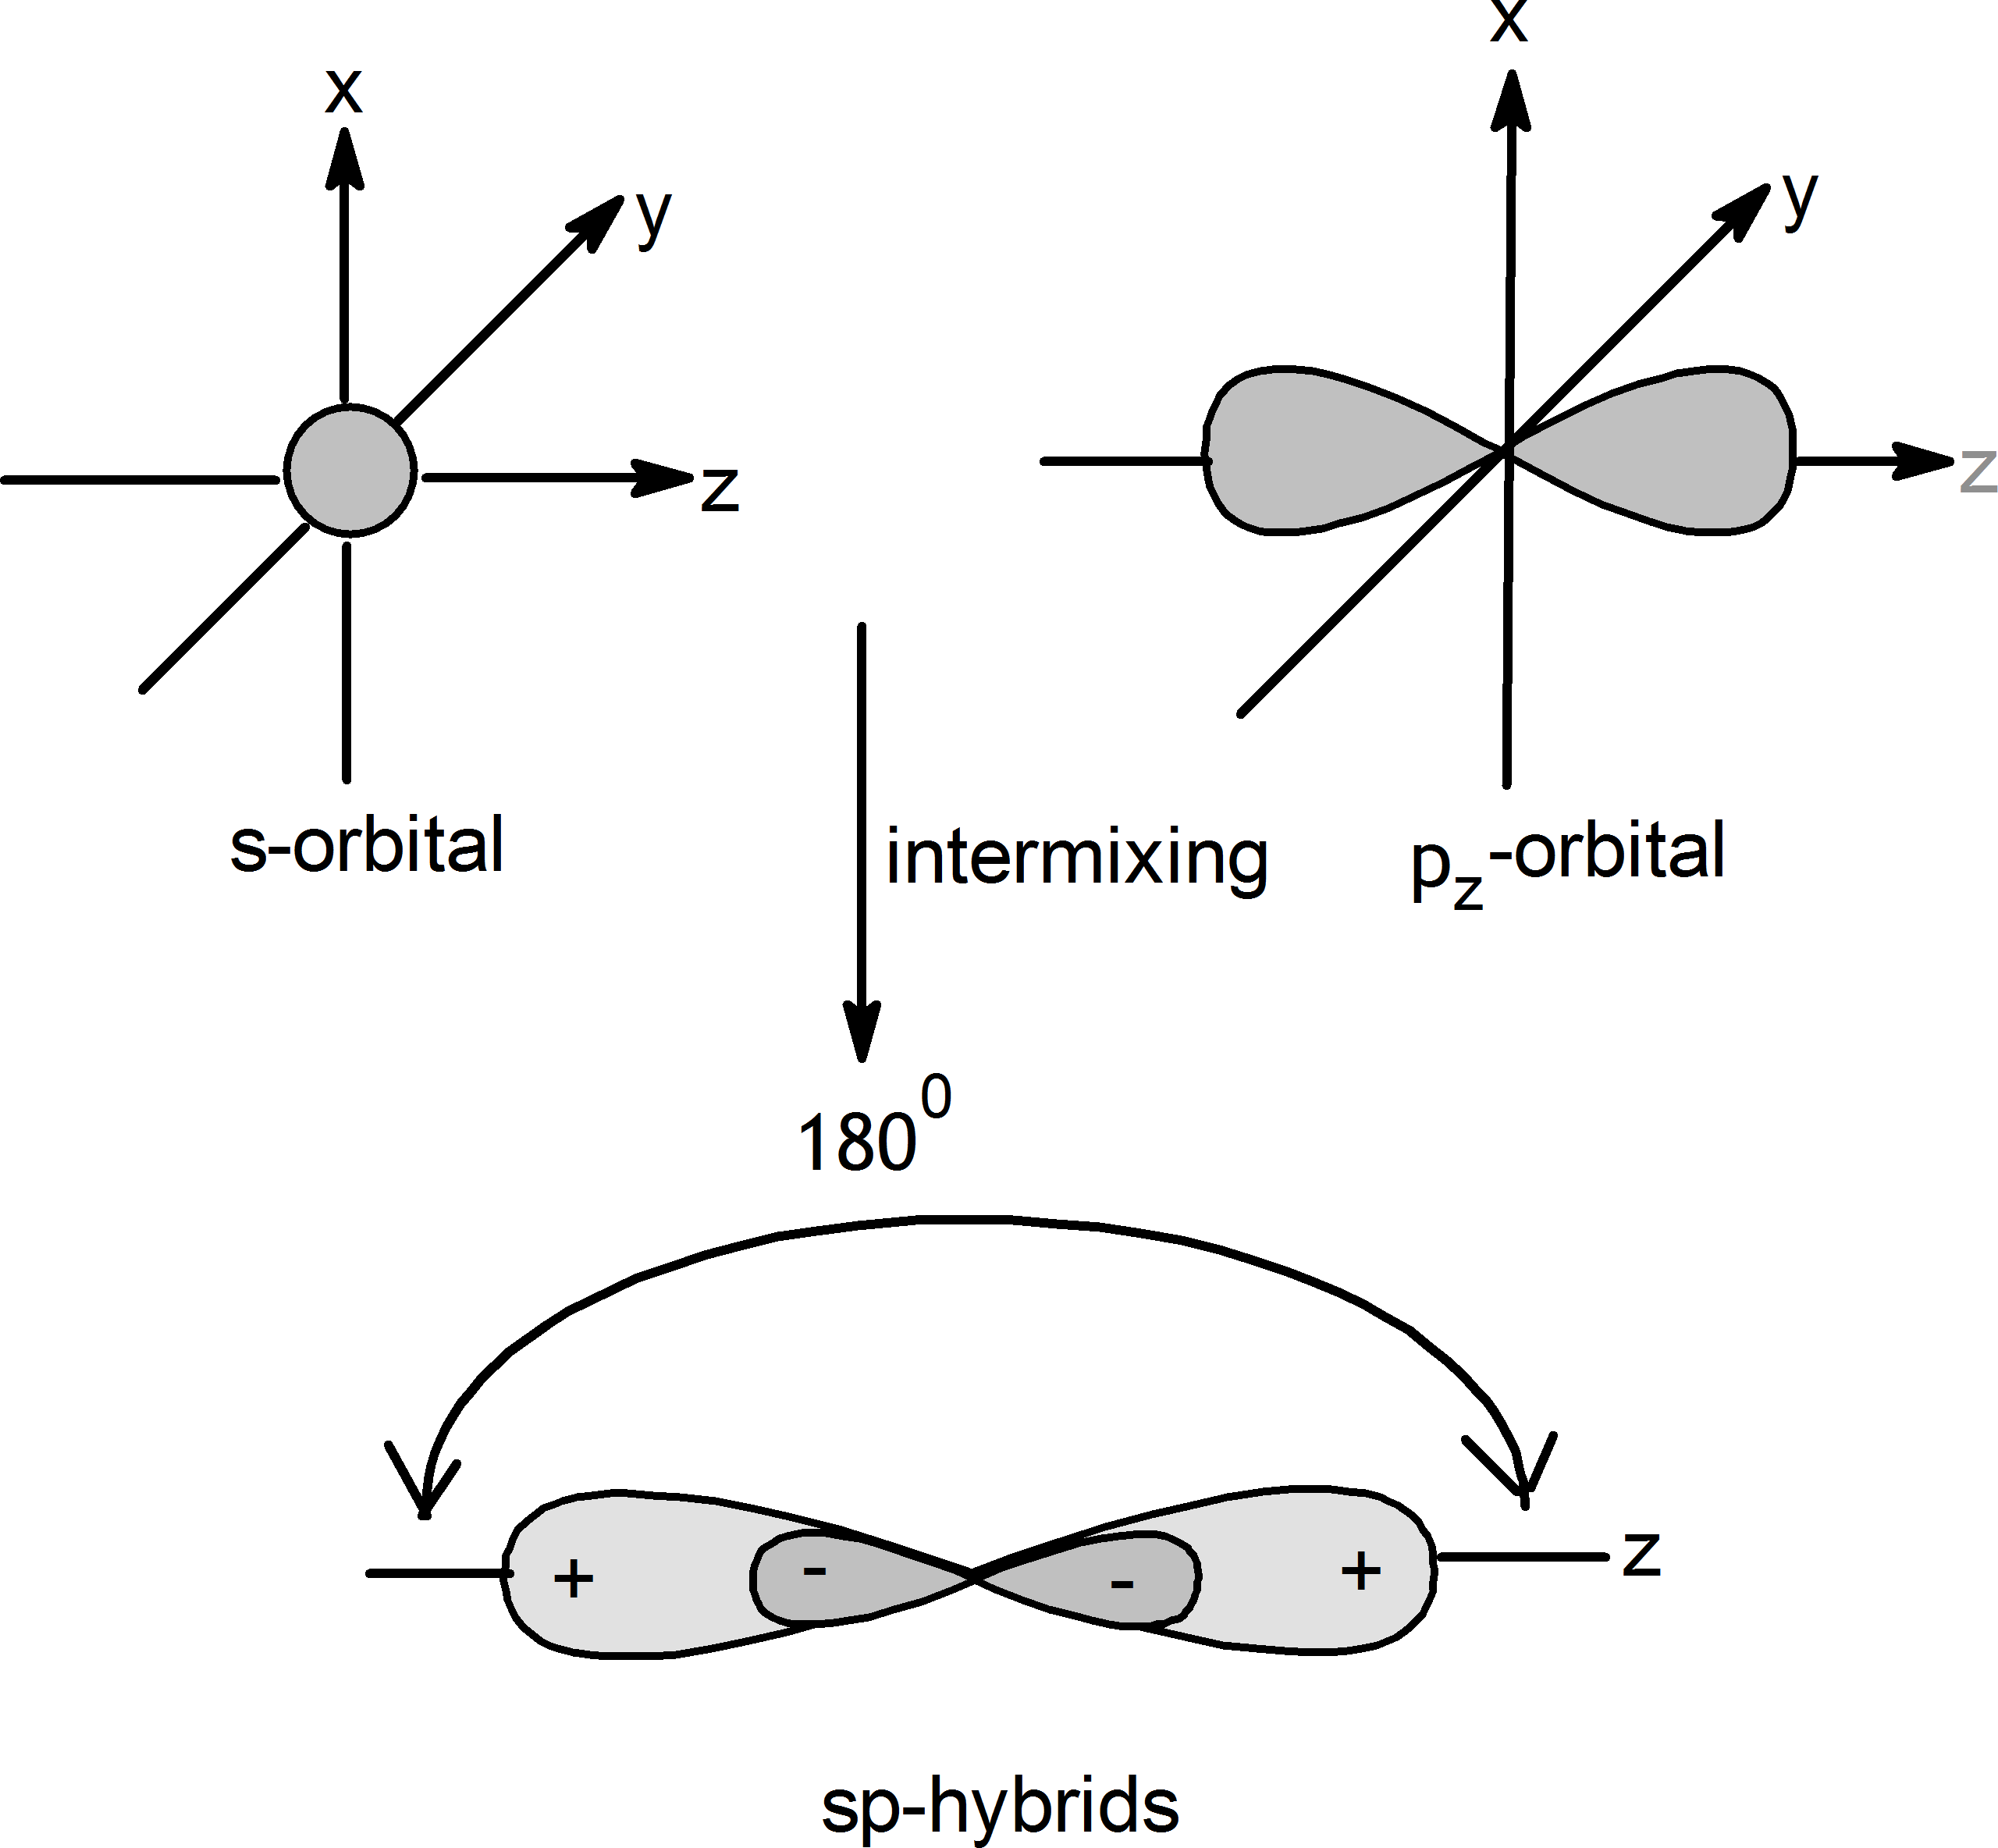 Image showing Shape of sp hybrid orbitals.